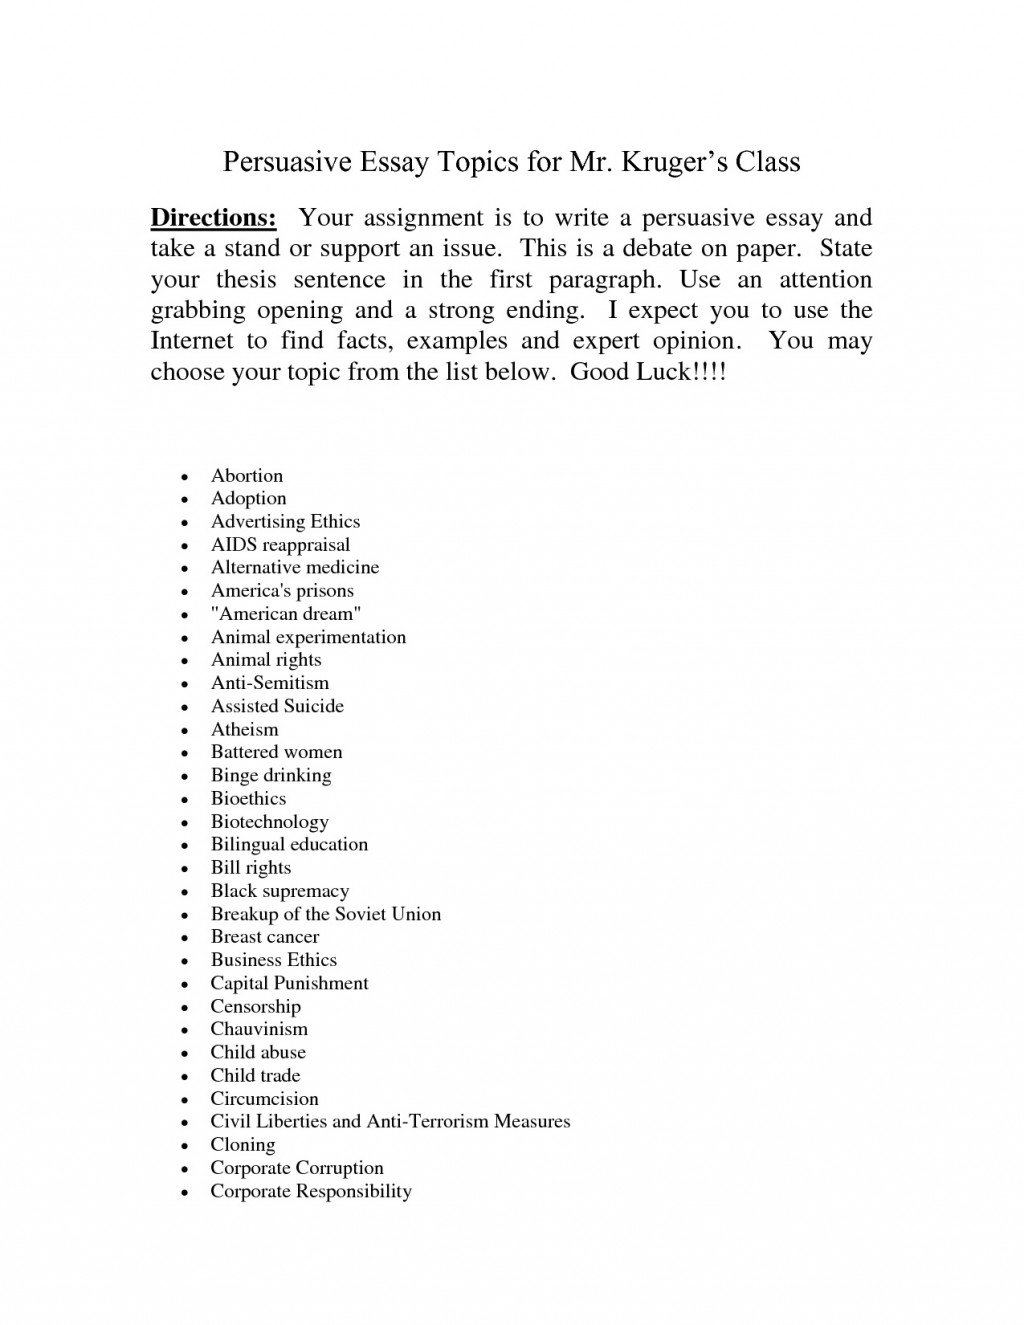 006 Essay Example Interesting Persuasive Topics Argumentative Writings And Essays Sports Sport For About Throughout Argum Medicine Dealing With Unforgettable Cool Speech College Students Easy Large